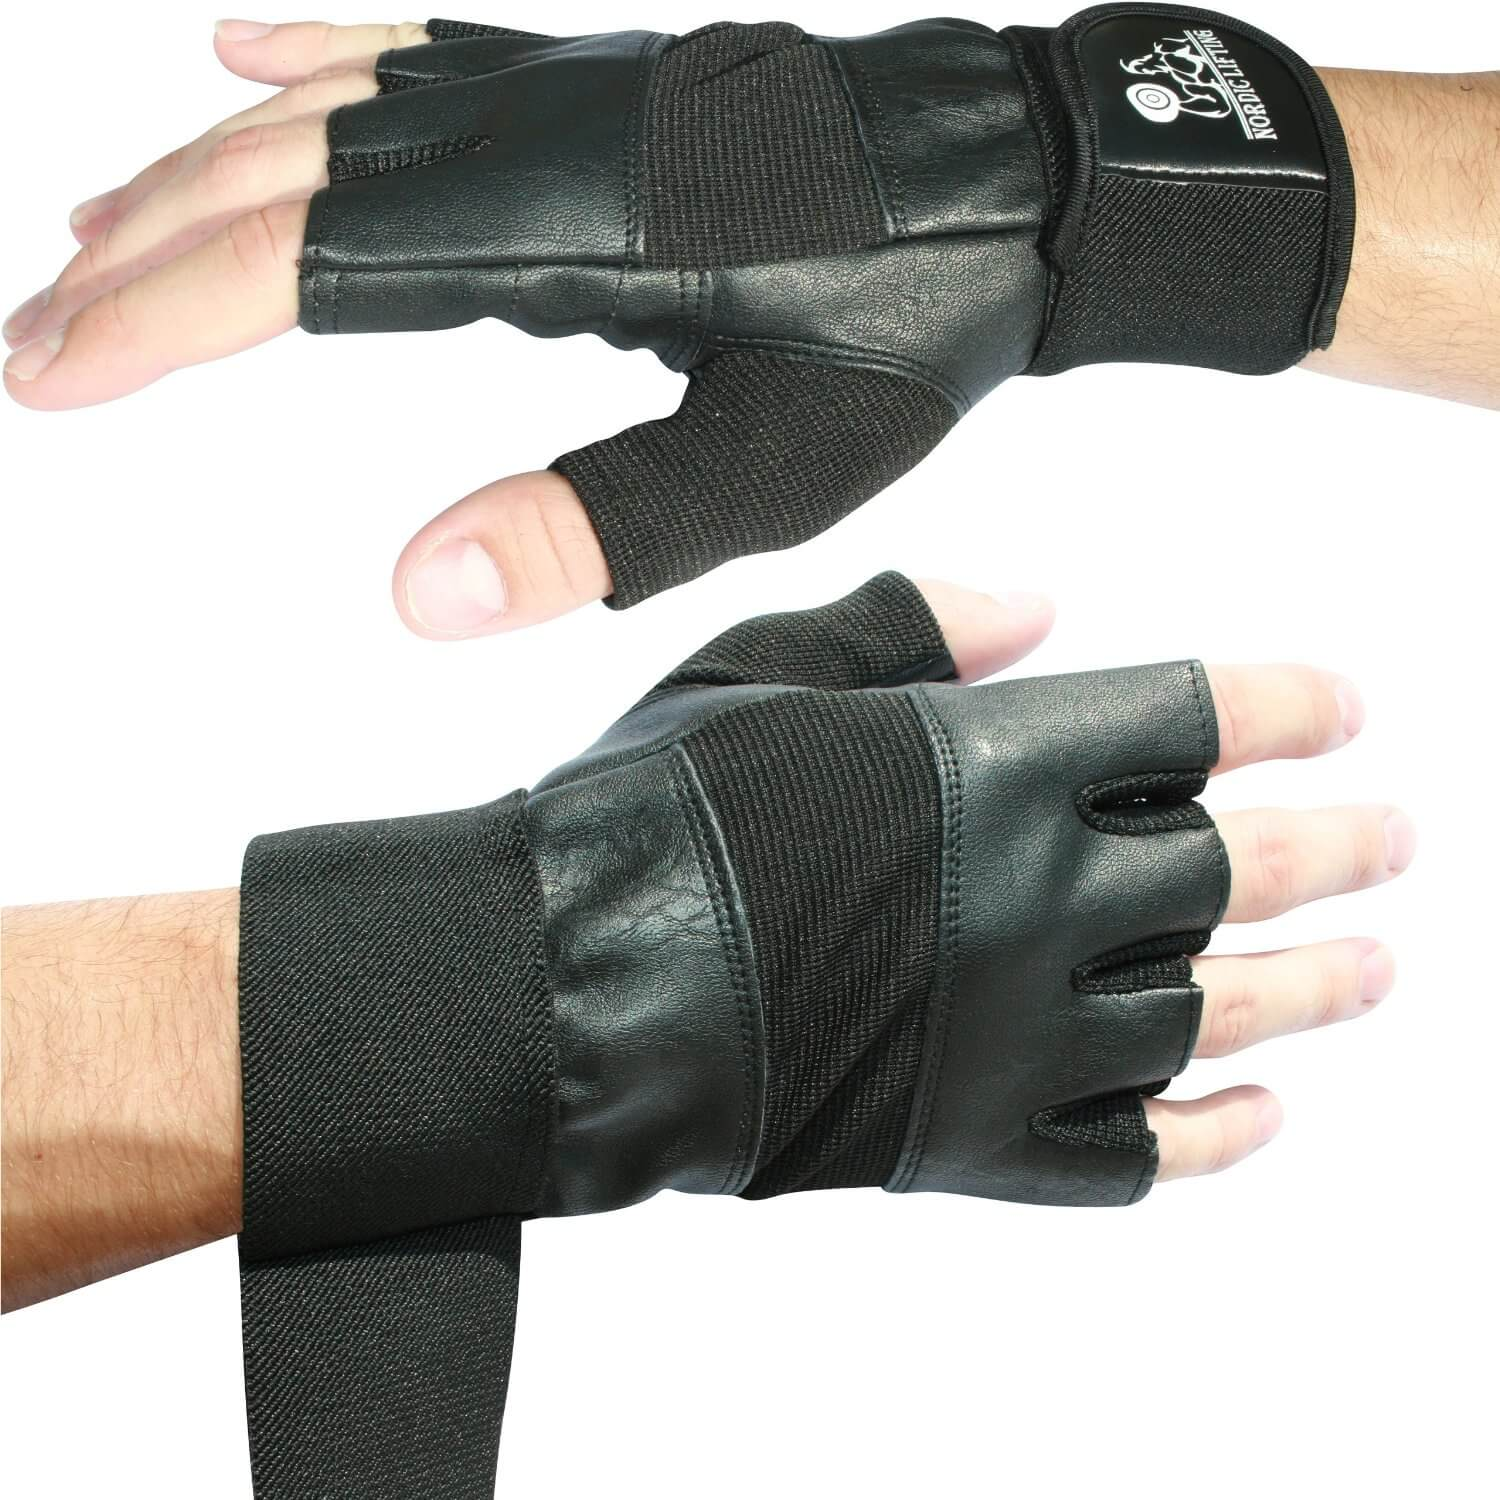 Nordict Lifting Weight Lifting Gloves with 12